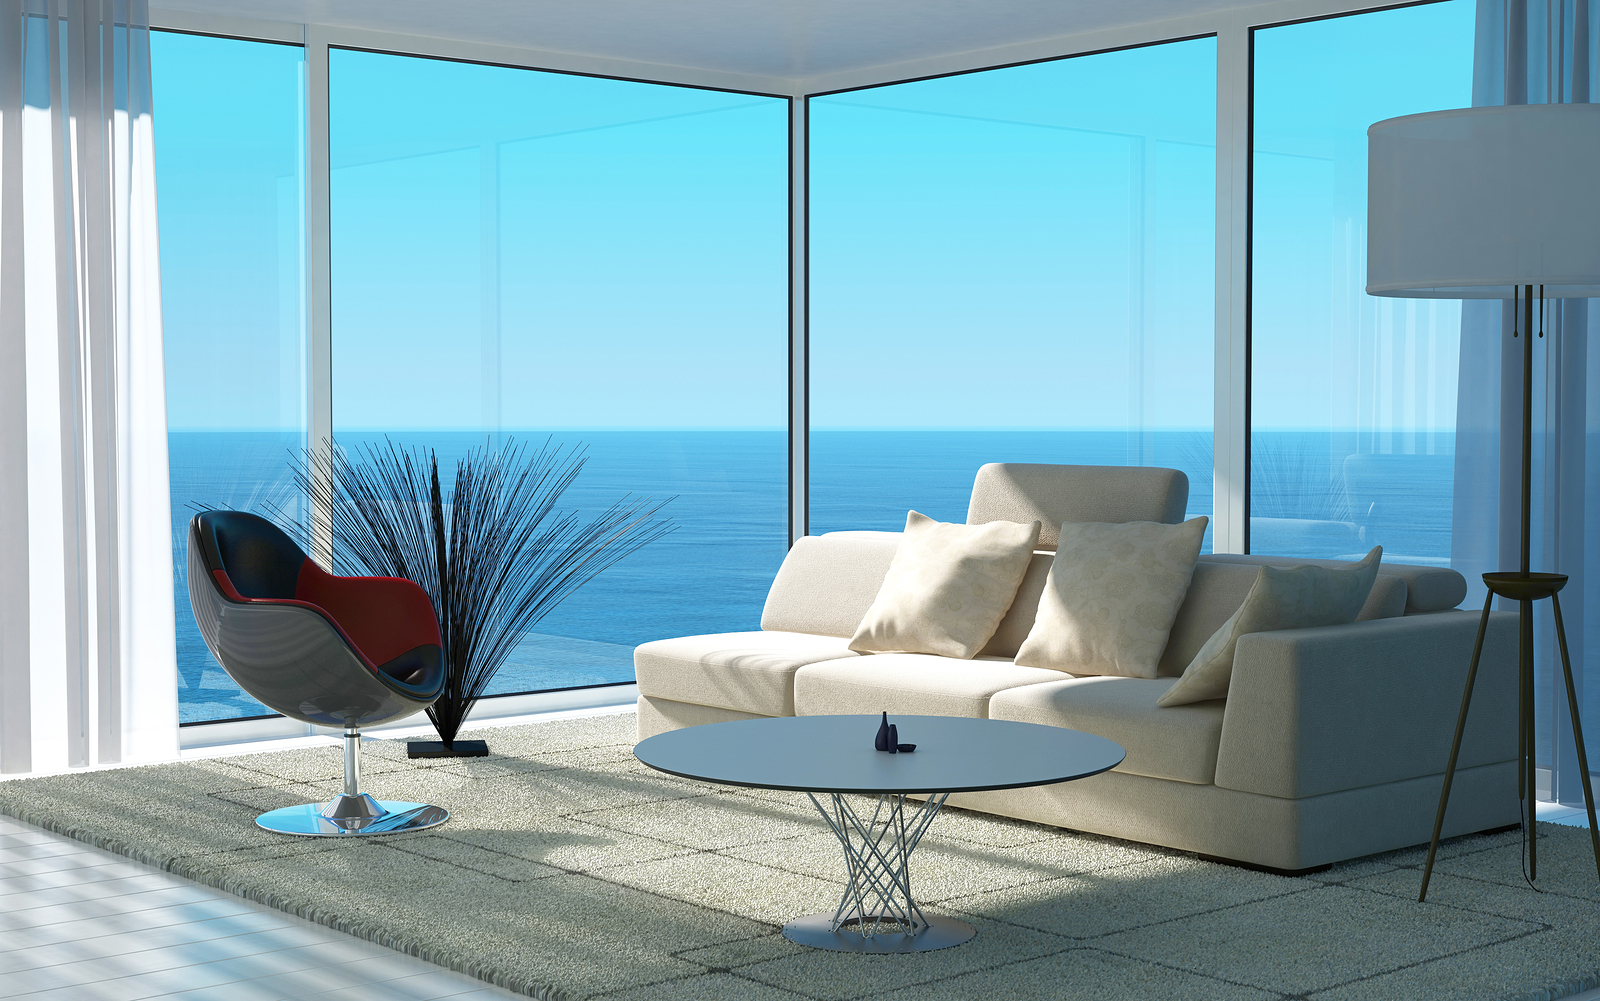 Luxe villa A 3D rendering of sunny living room interior